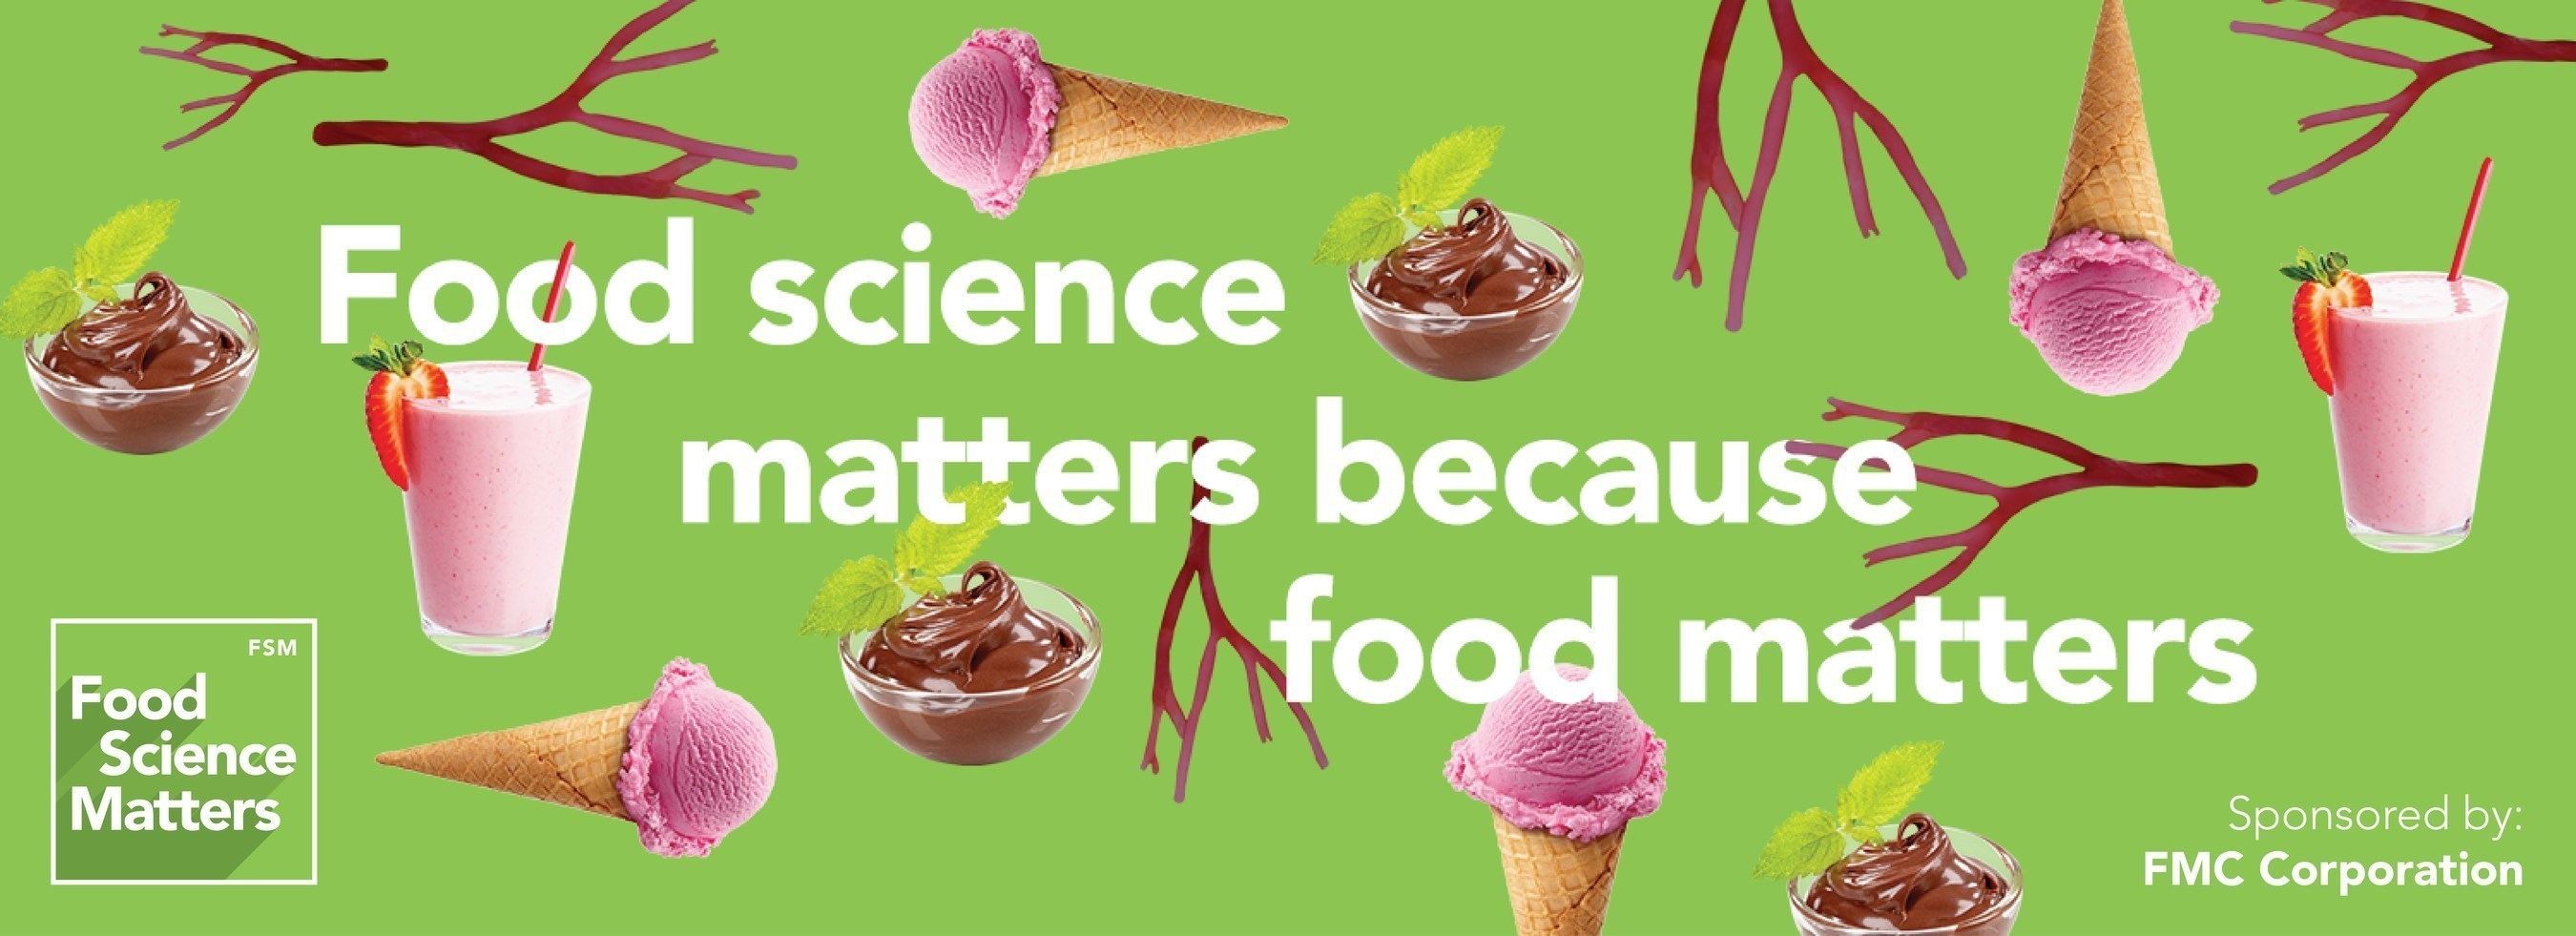 To learn more, please visit FoodScienceMatters.com